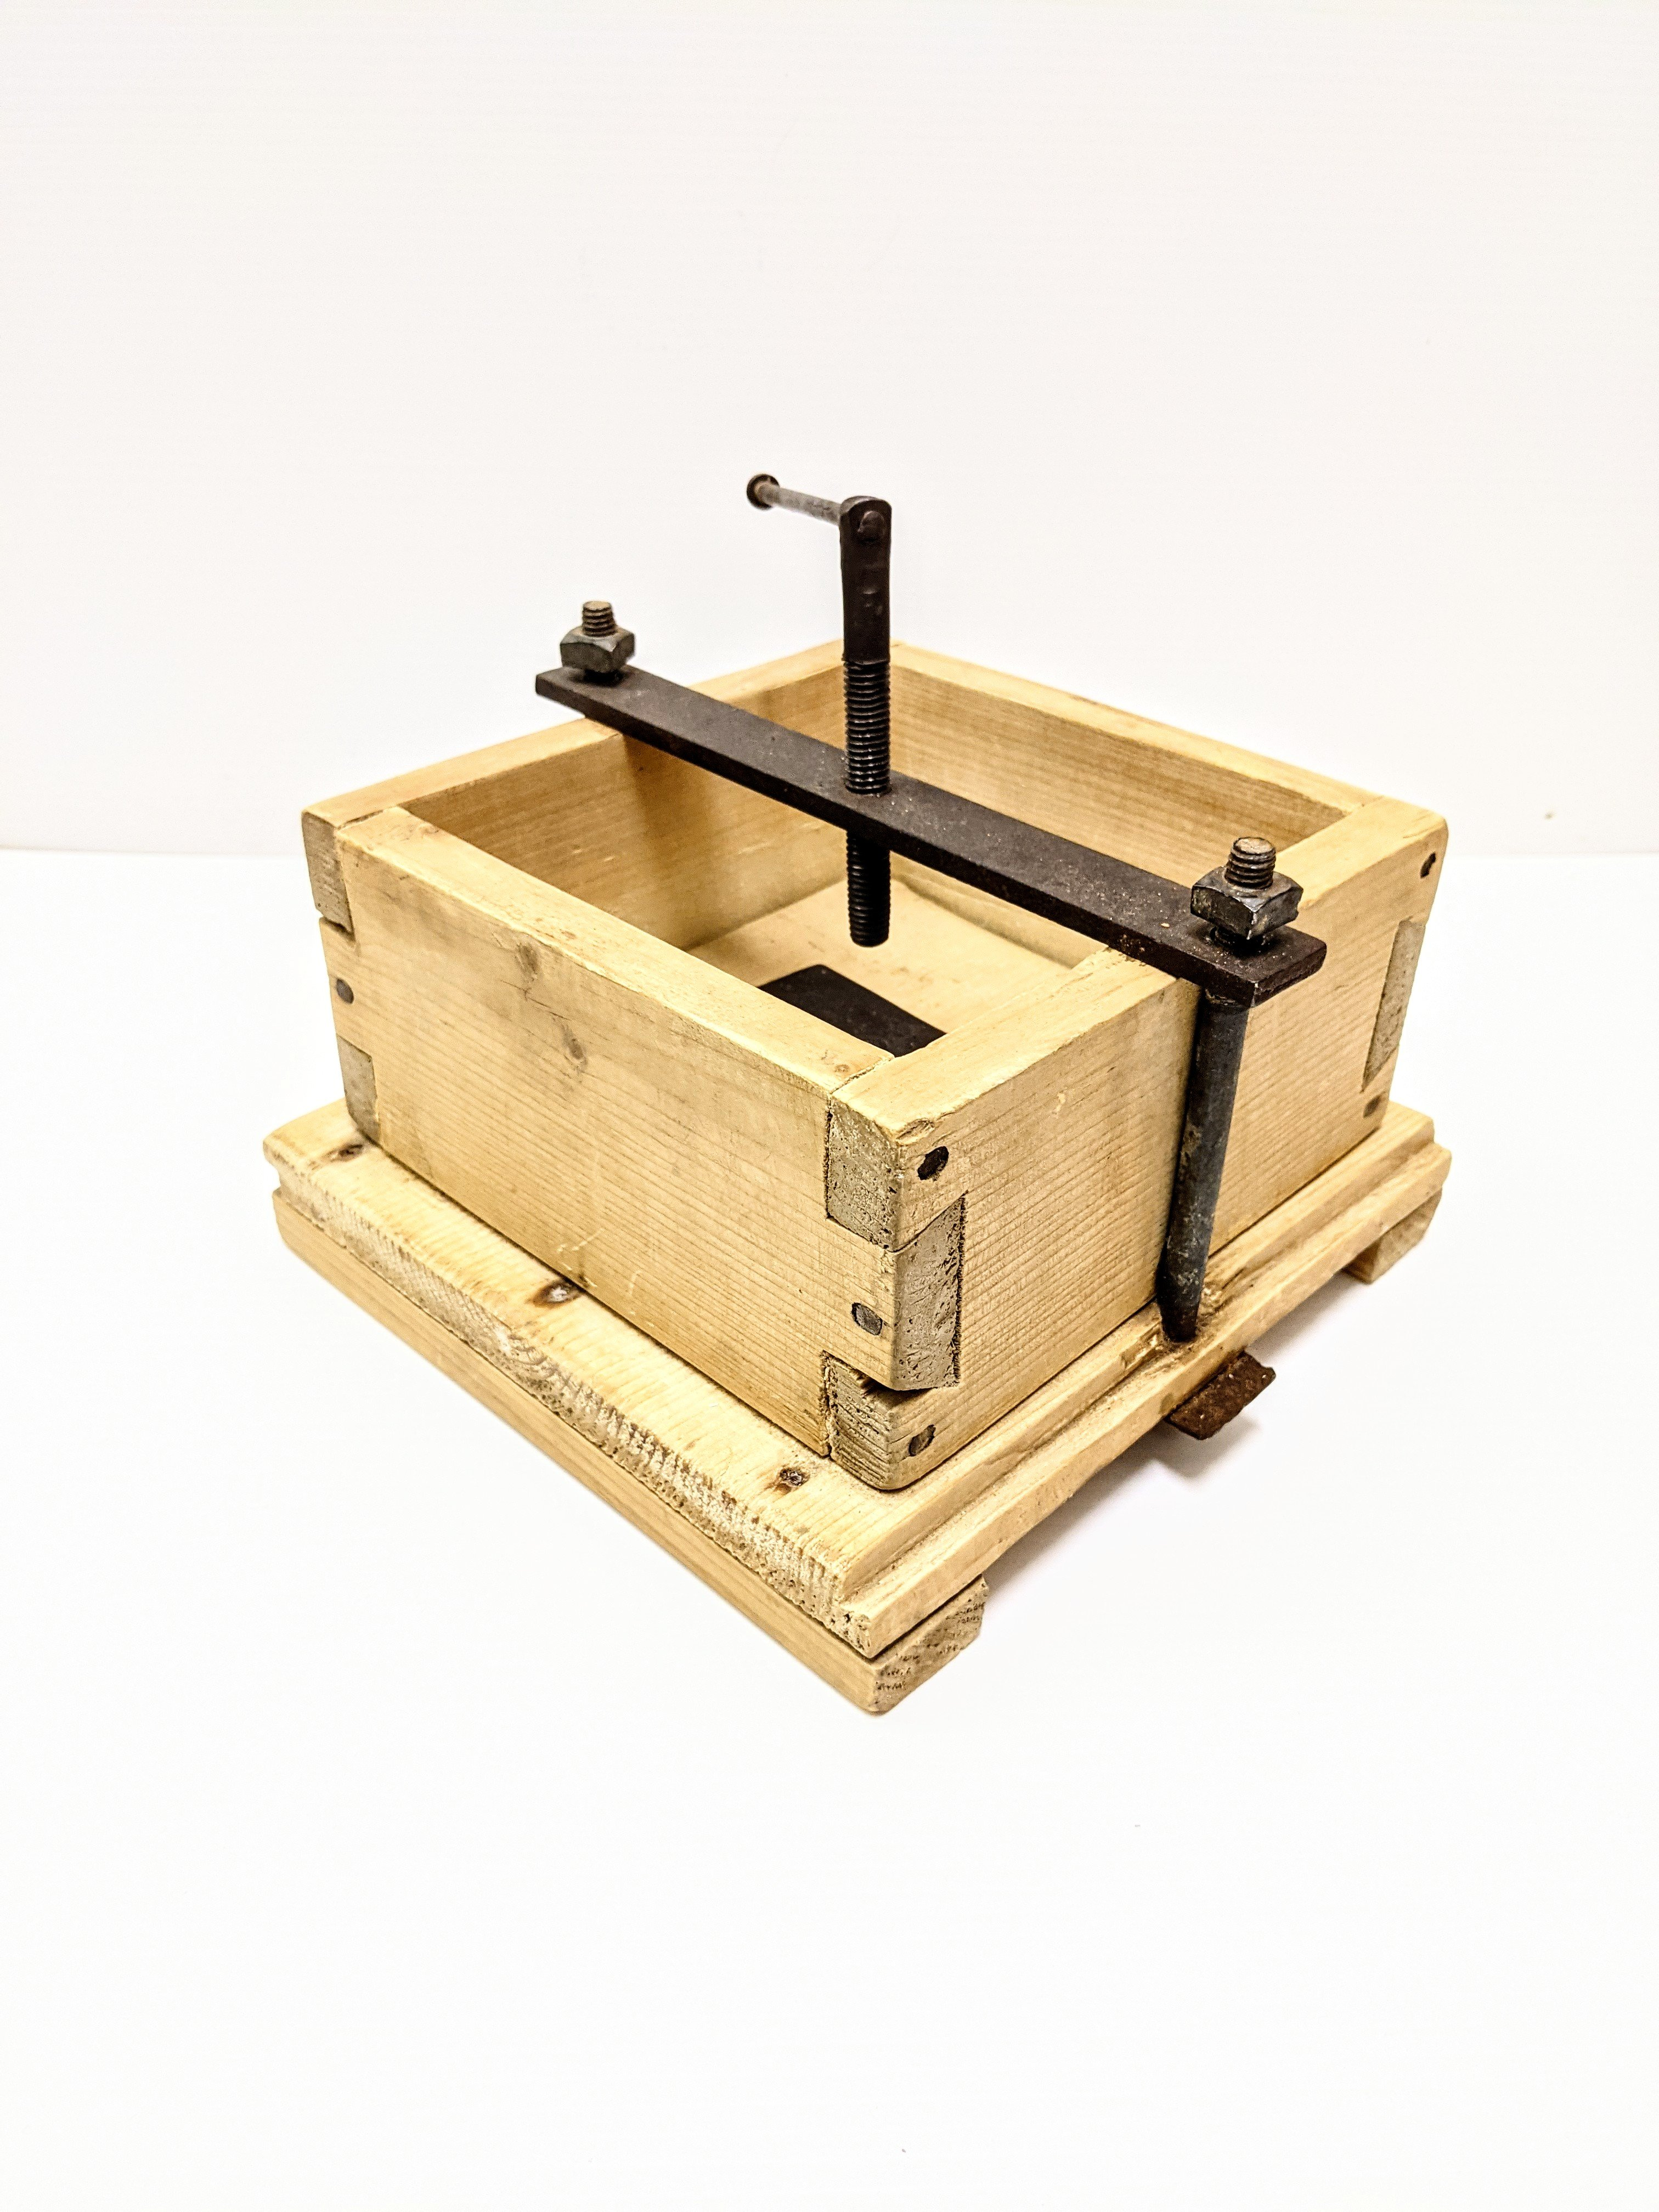 This artifact of the week is a food press from the Trapper Shack. A homemade affair, this large block likely was used to press cheese or butter. Upon close inspection one can see the remains of such food products pressed into the wood base and sides. Holes are drilled in the base to allow for drainage of the inserted food item. Notice the expertly carved dove tail notching holding the box together - an important feature for this box that would be under pressure/ stress for extended periods of time!  10/05/2021 2007.47.11.1 / Trapper Shack